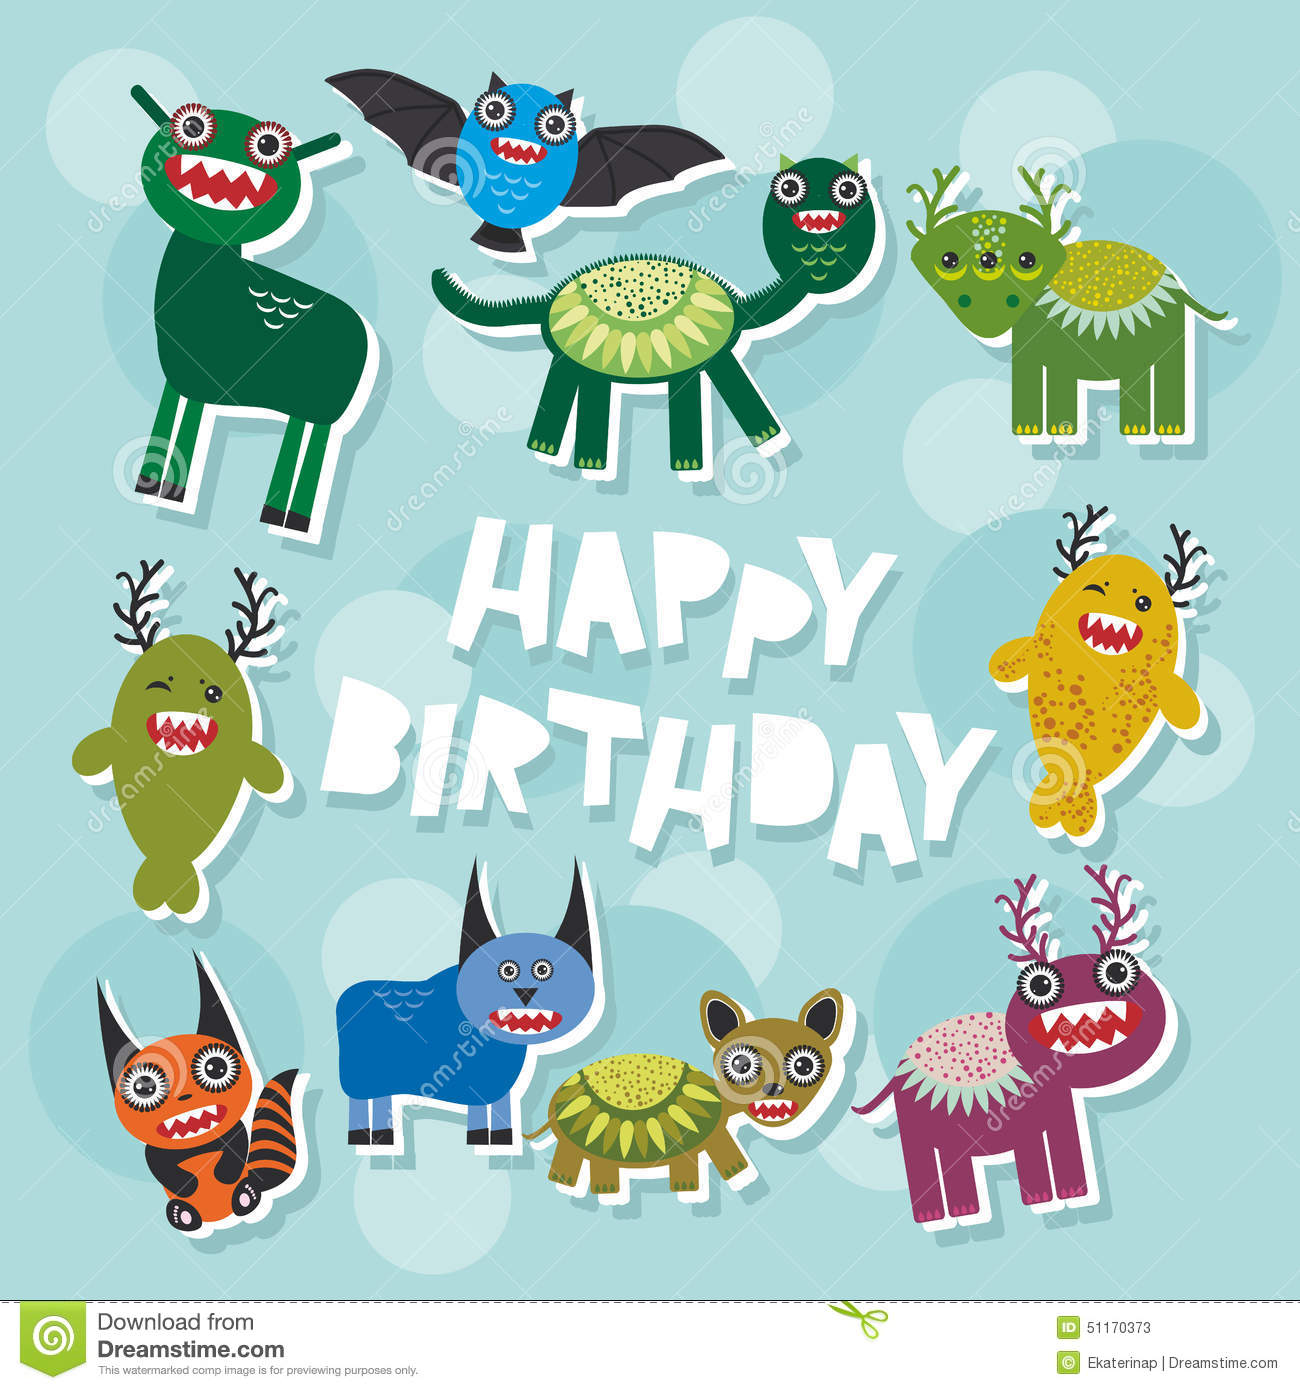 Monster party invitation card design vector cartoon illustration happy birthday funny monsters party card design vector stock photos kristyandbryce Image collections